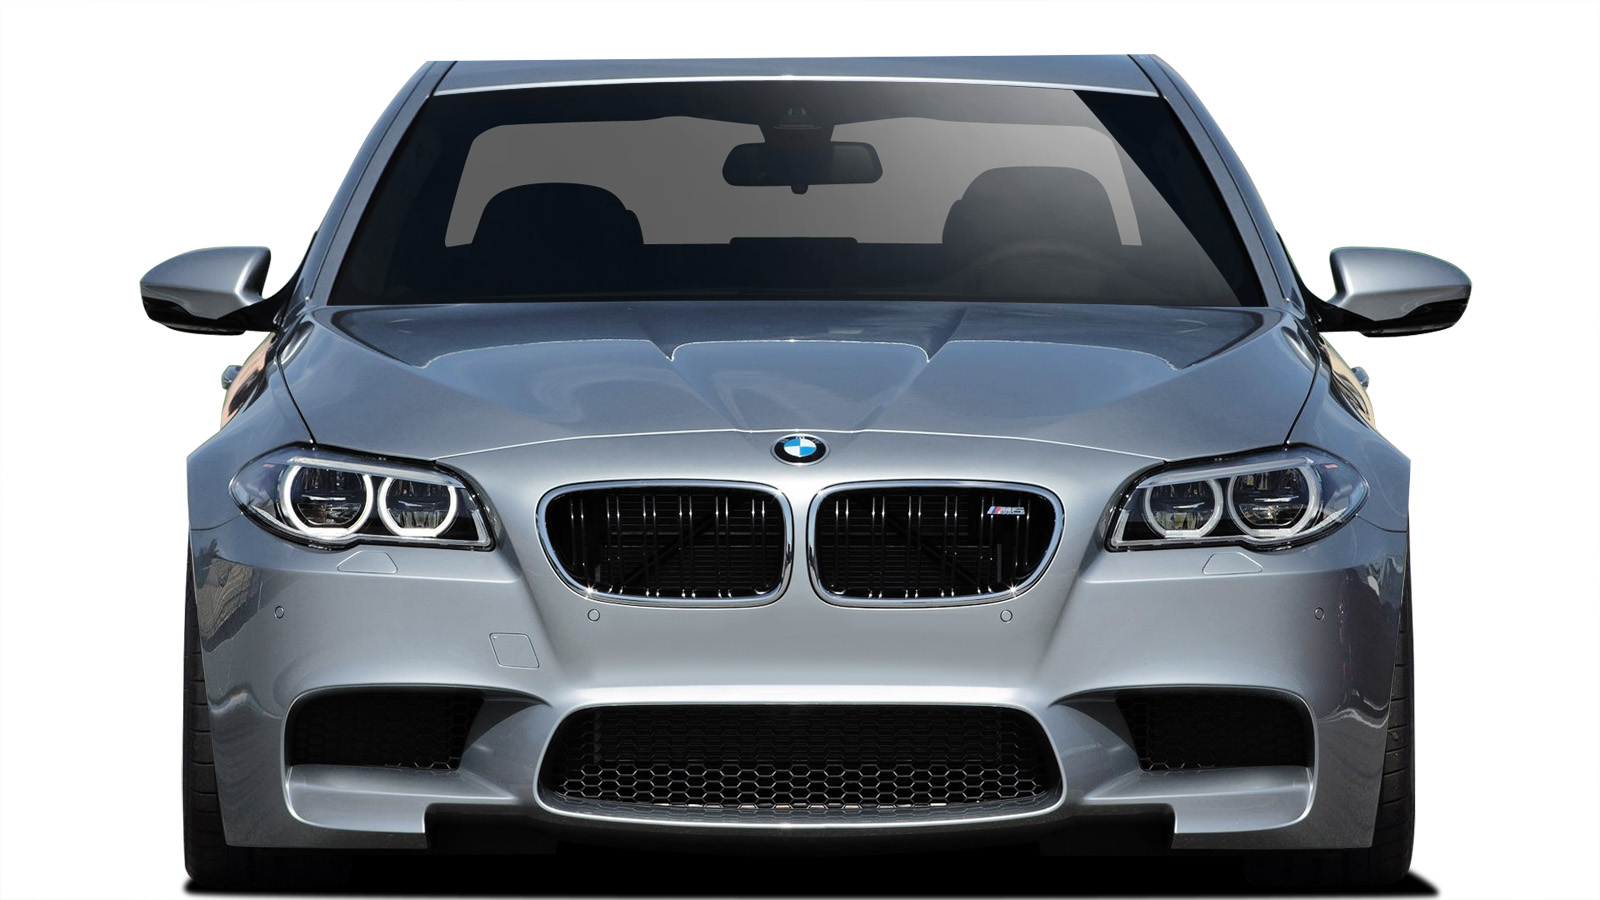 2016 BMW 5 Series 4DR - Polypropylene Body Kit Bodykit - BMW 5 Series F10 Vaero M5 Look Conversion Kit ( with PDC , with Washer , without Camera ) - 6